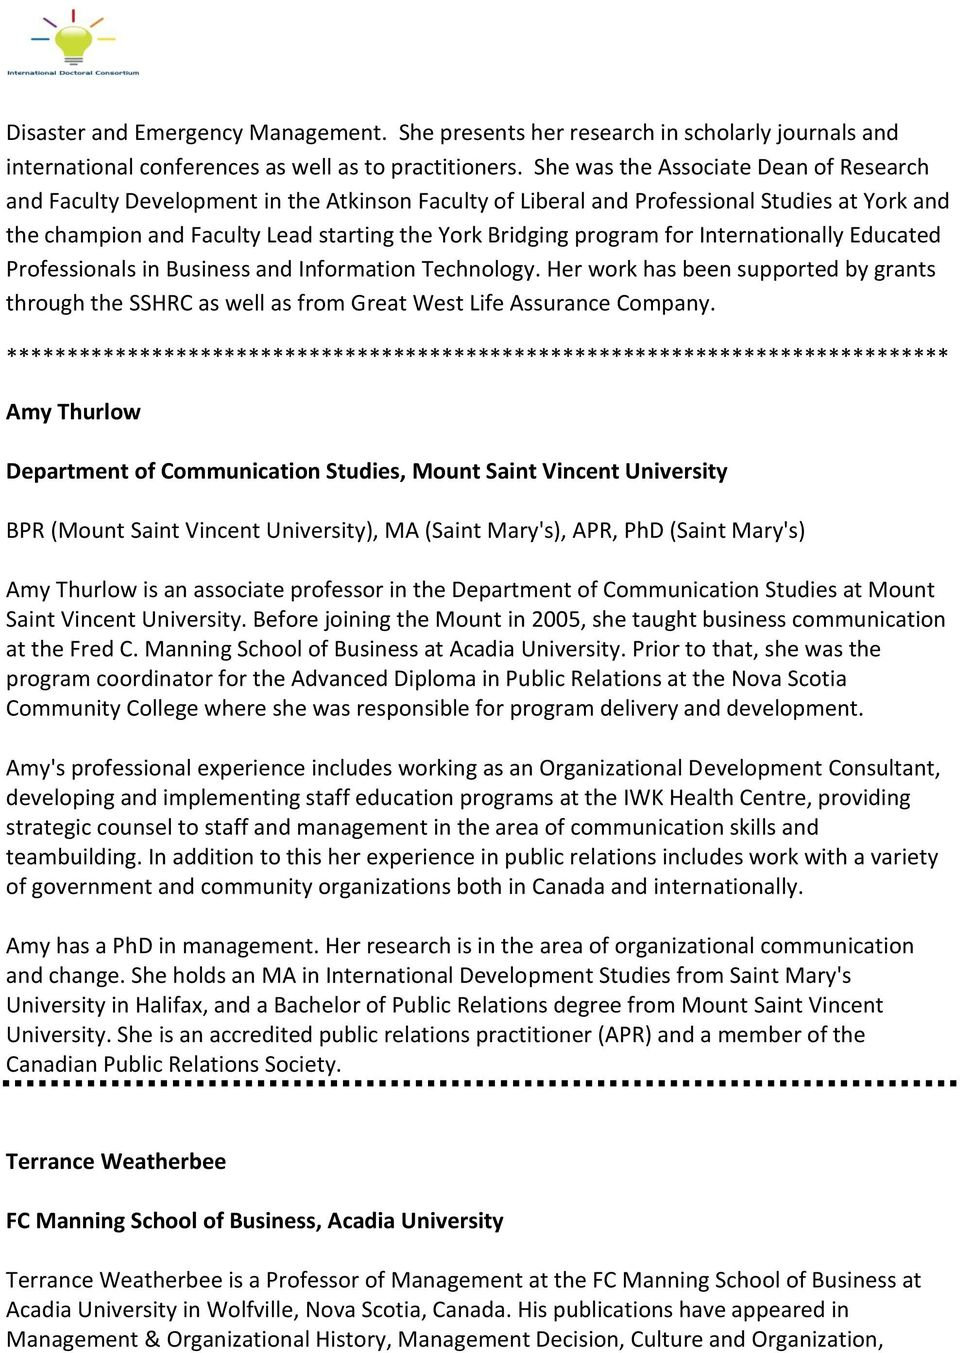 FACULTY BIOS  School of Business Administration and Faculty